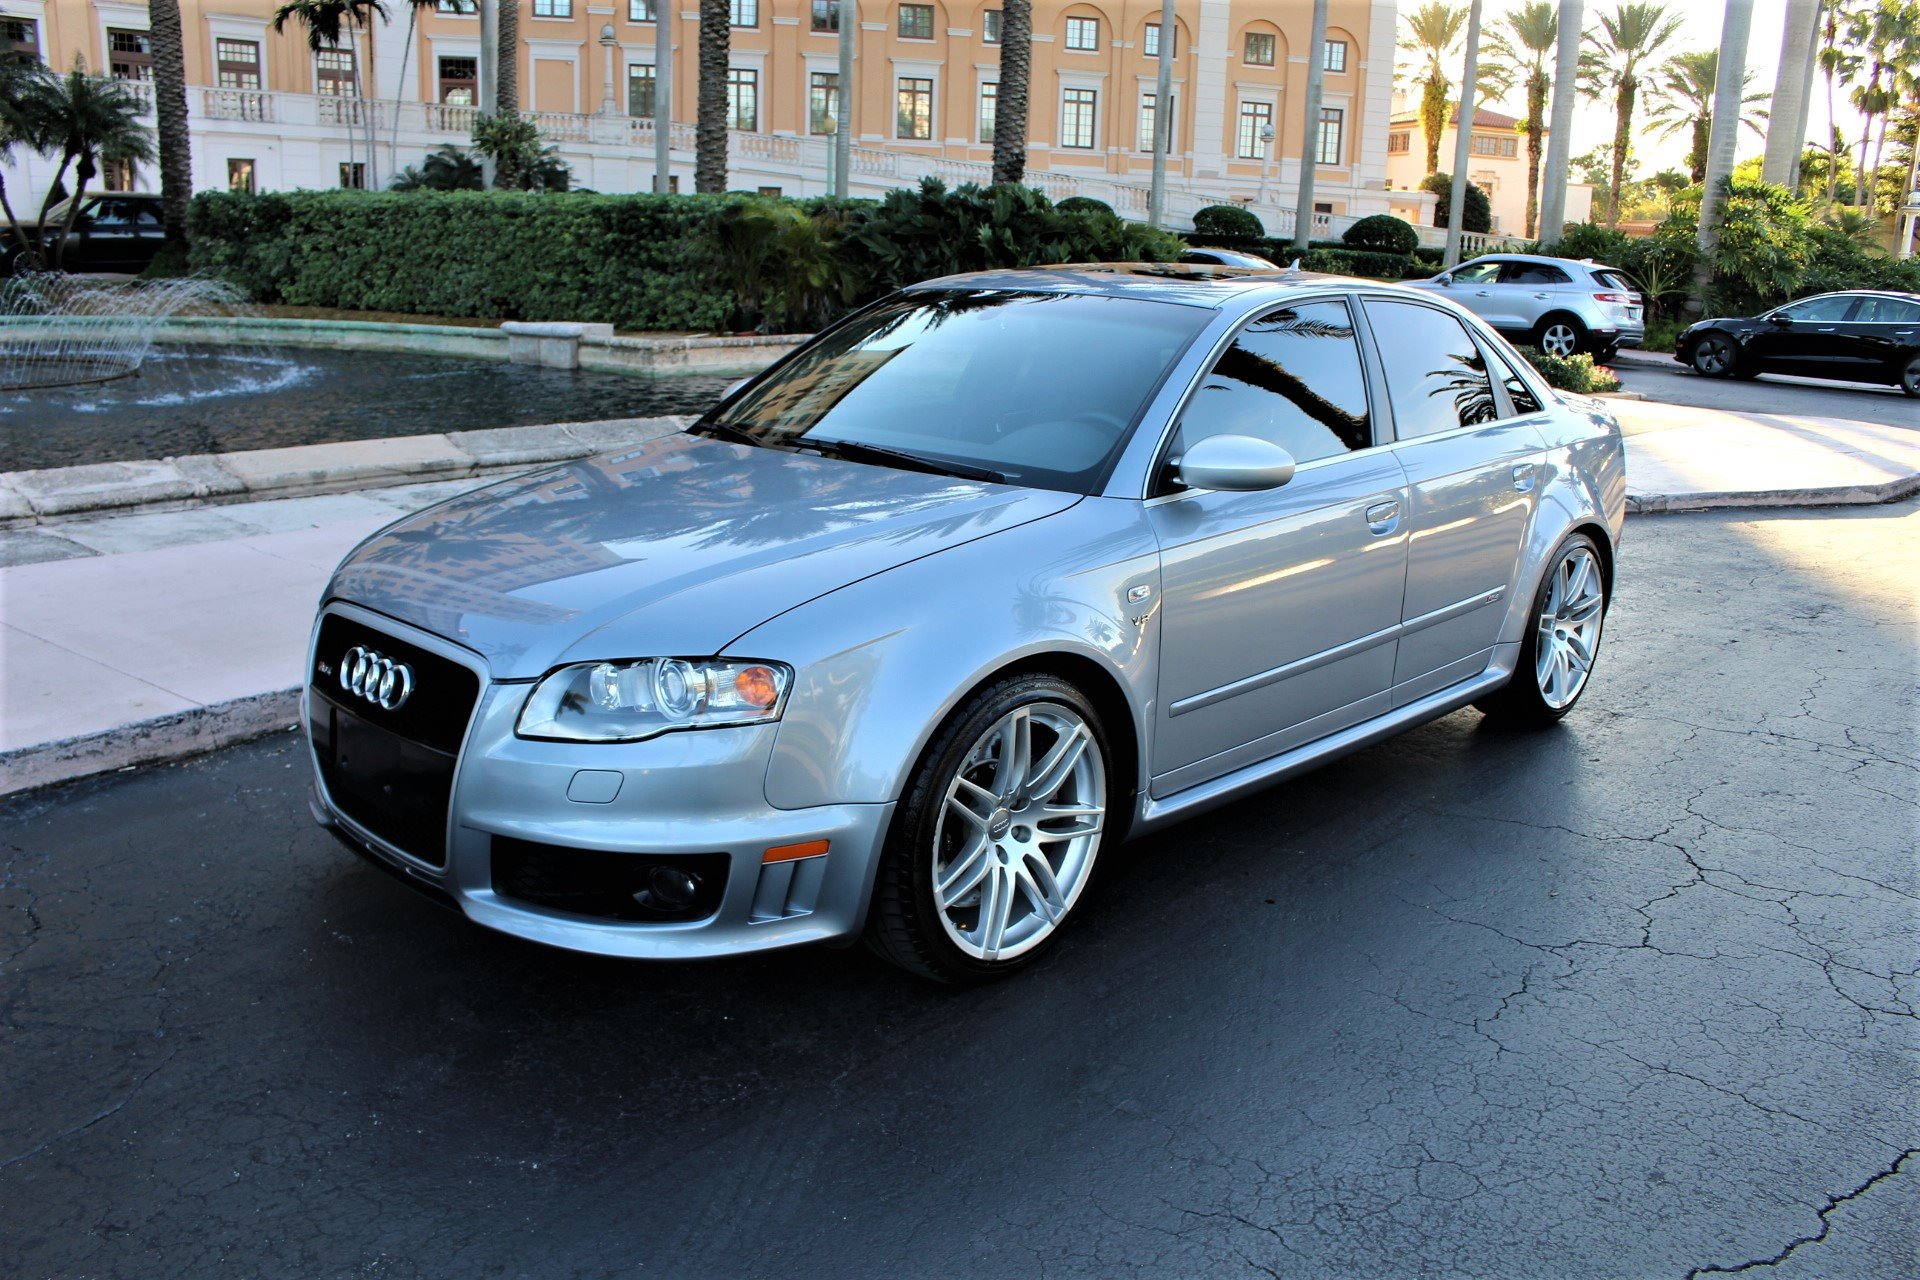 Used 2008 Audi RS 4 quattro for sale Sold at The Gables Sports Cars in Miami FL 33146 4